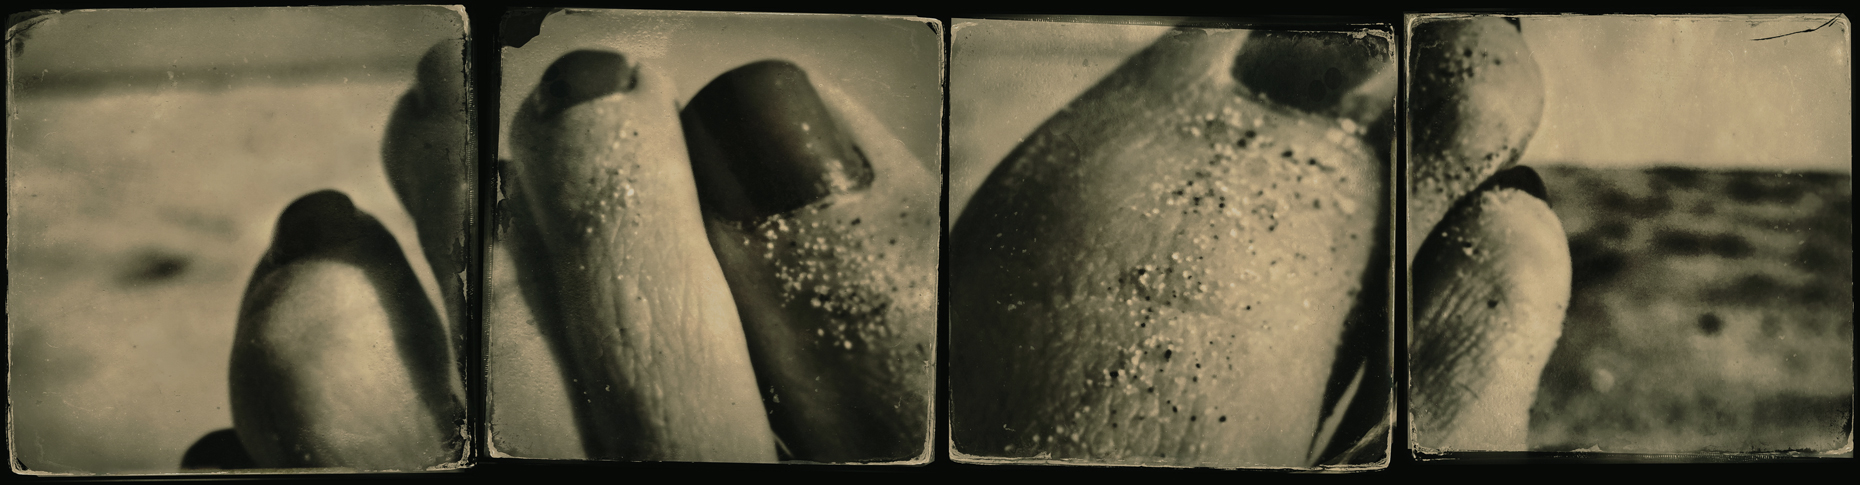 FinStudy_MacroToes_wet-plate-sketch_All_Personal_Retouched_Web